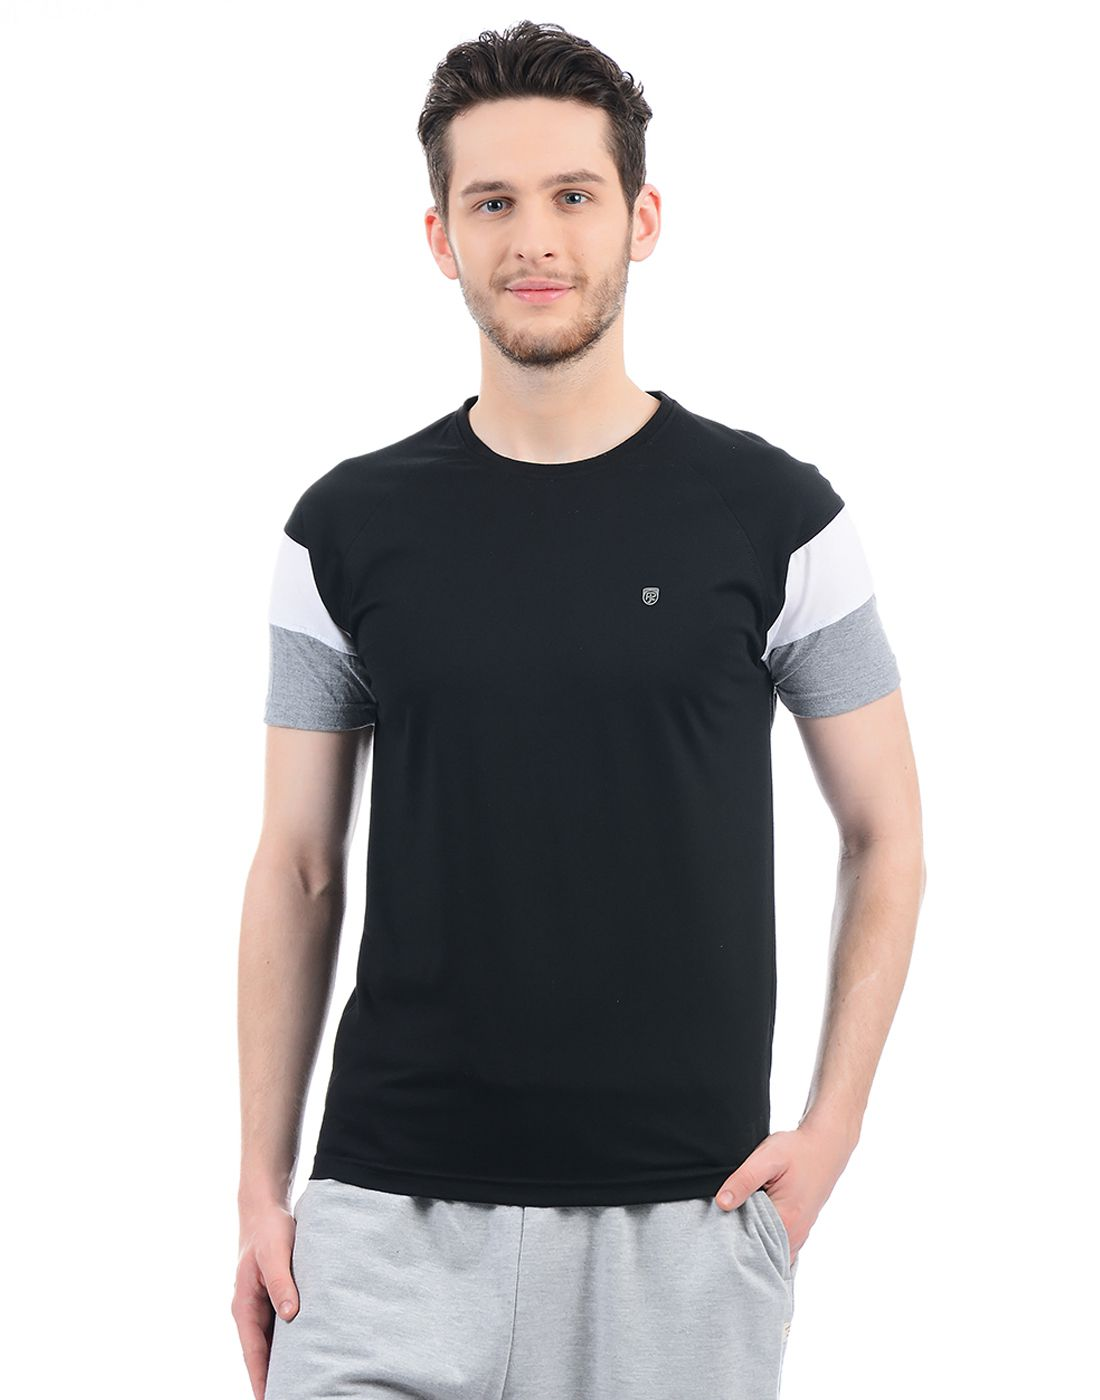 Pepe Jeans Black Round T-Shirt